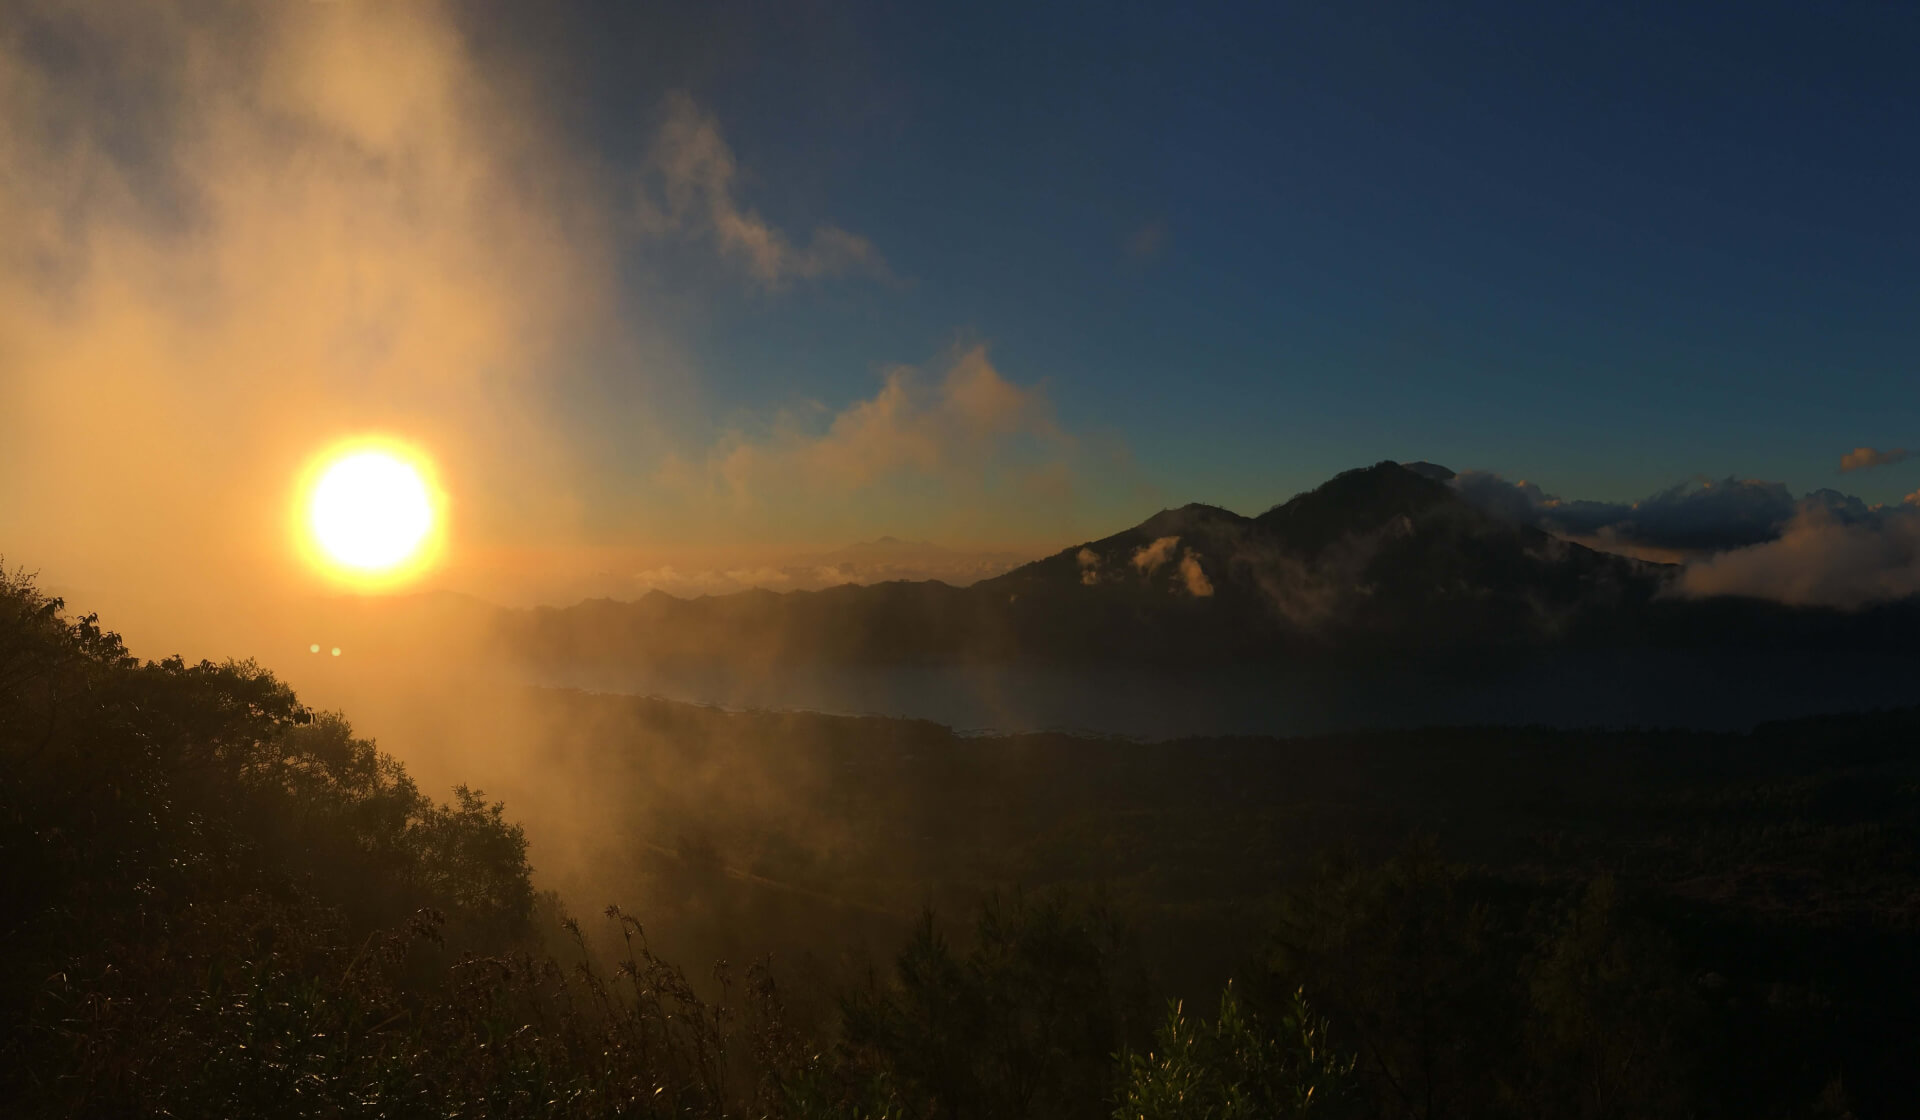 Misty sunrise over a huge lake and mountains from Mount Batur in Bali